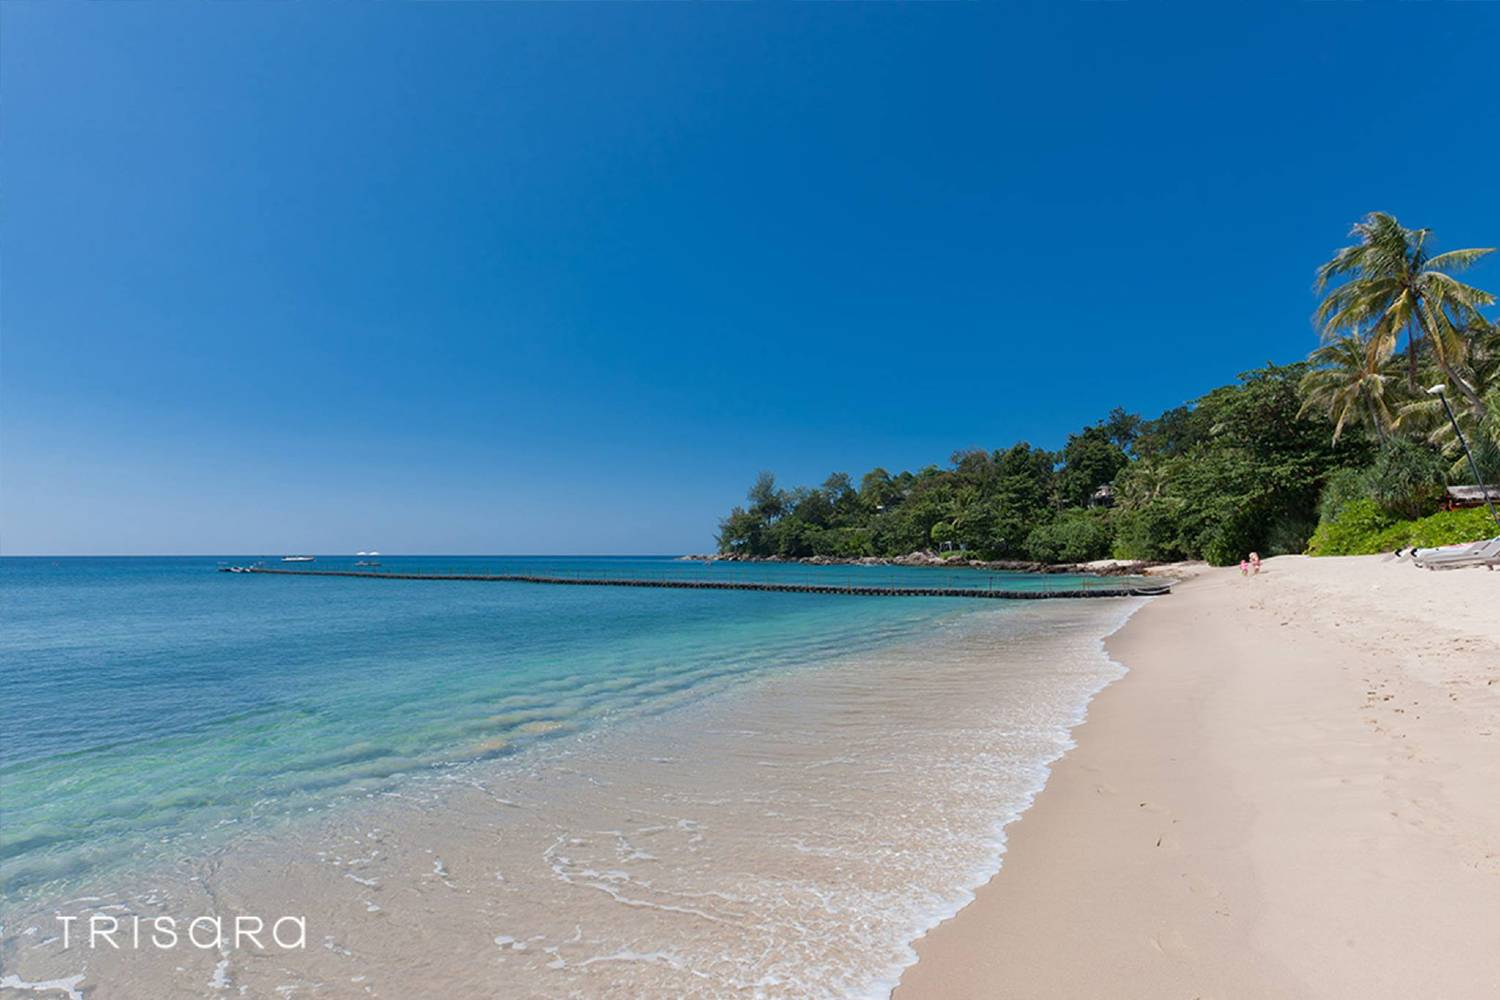 The private beach of Trisara on Phuket, Thailand